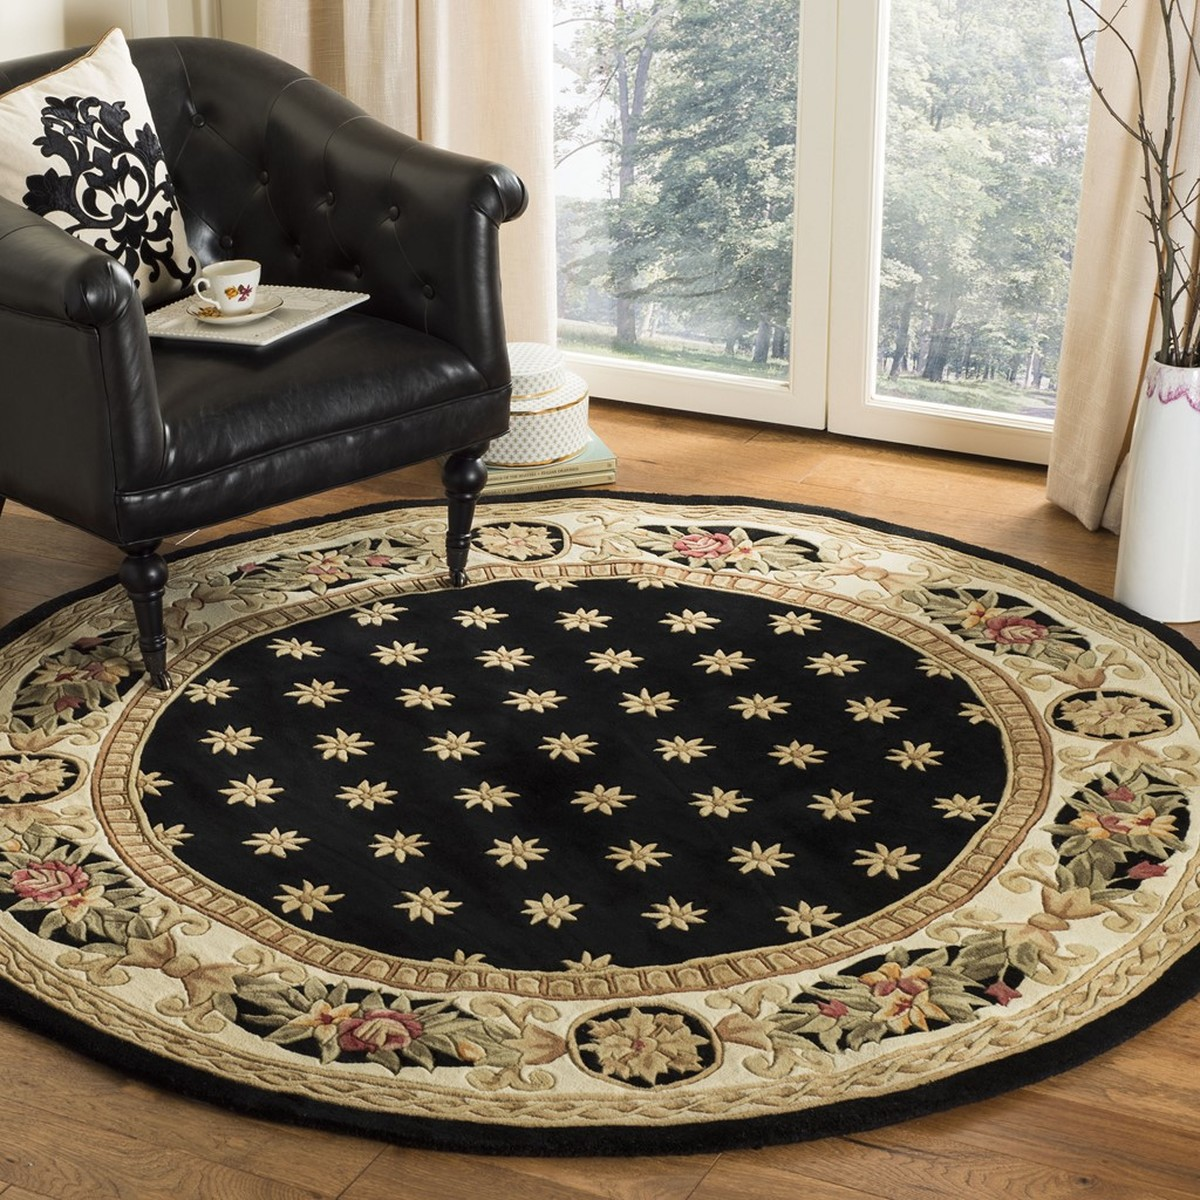 Rug Na610d Naples Area Rugs By Safavieh